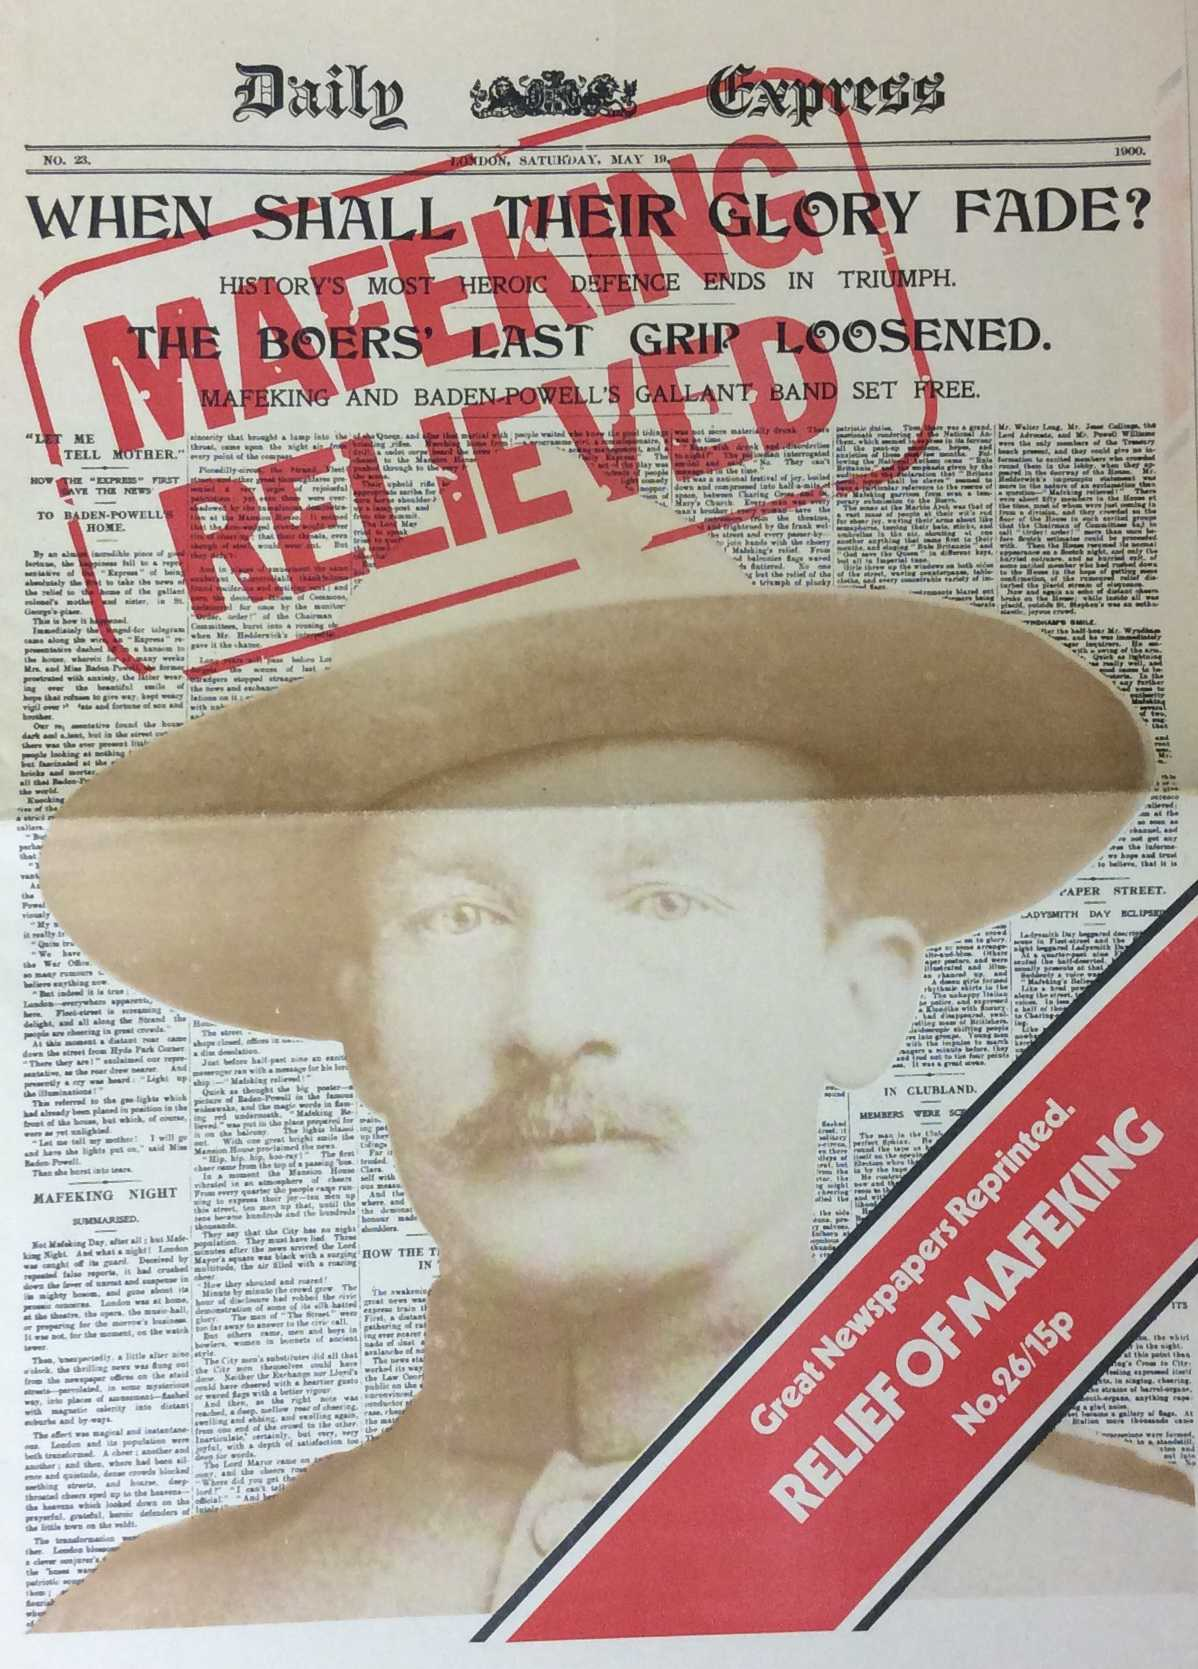 --- - The Relief of Mafeking. The Boer War. The Daily Express. Saturday, May 19th, 1900. Great Newspapers Reprinted, Number 26.